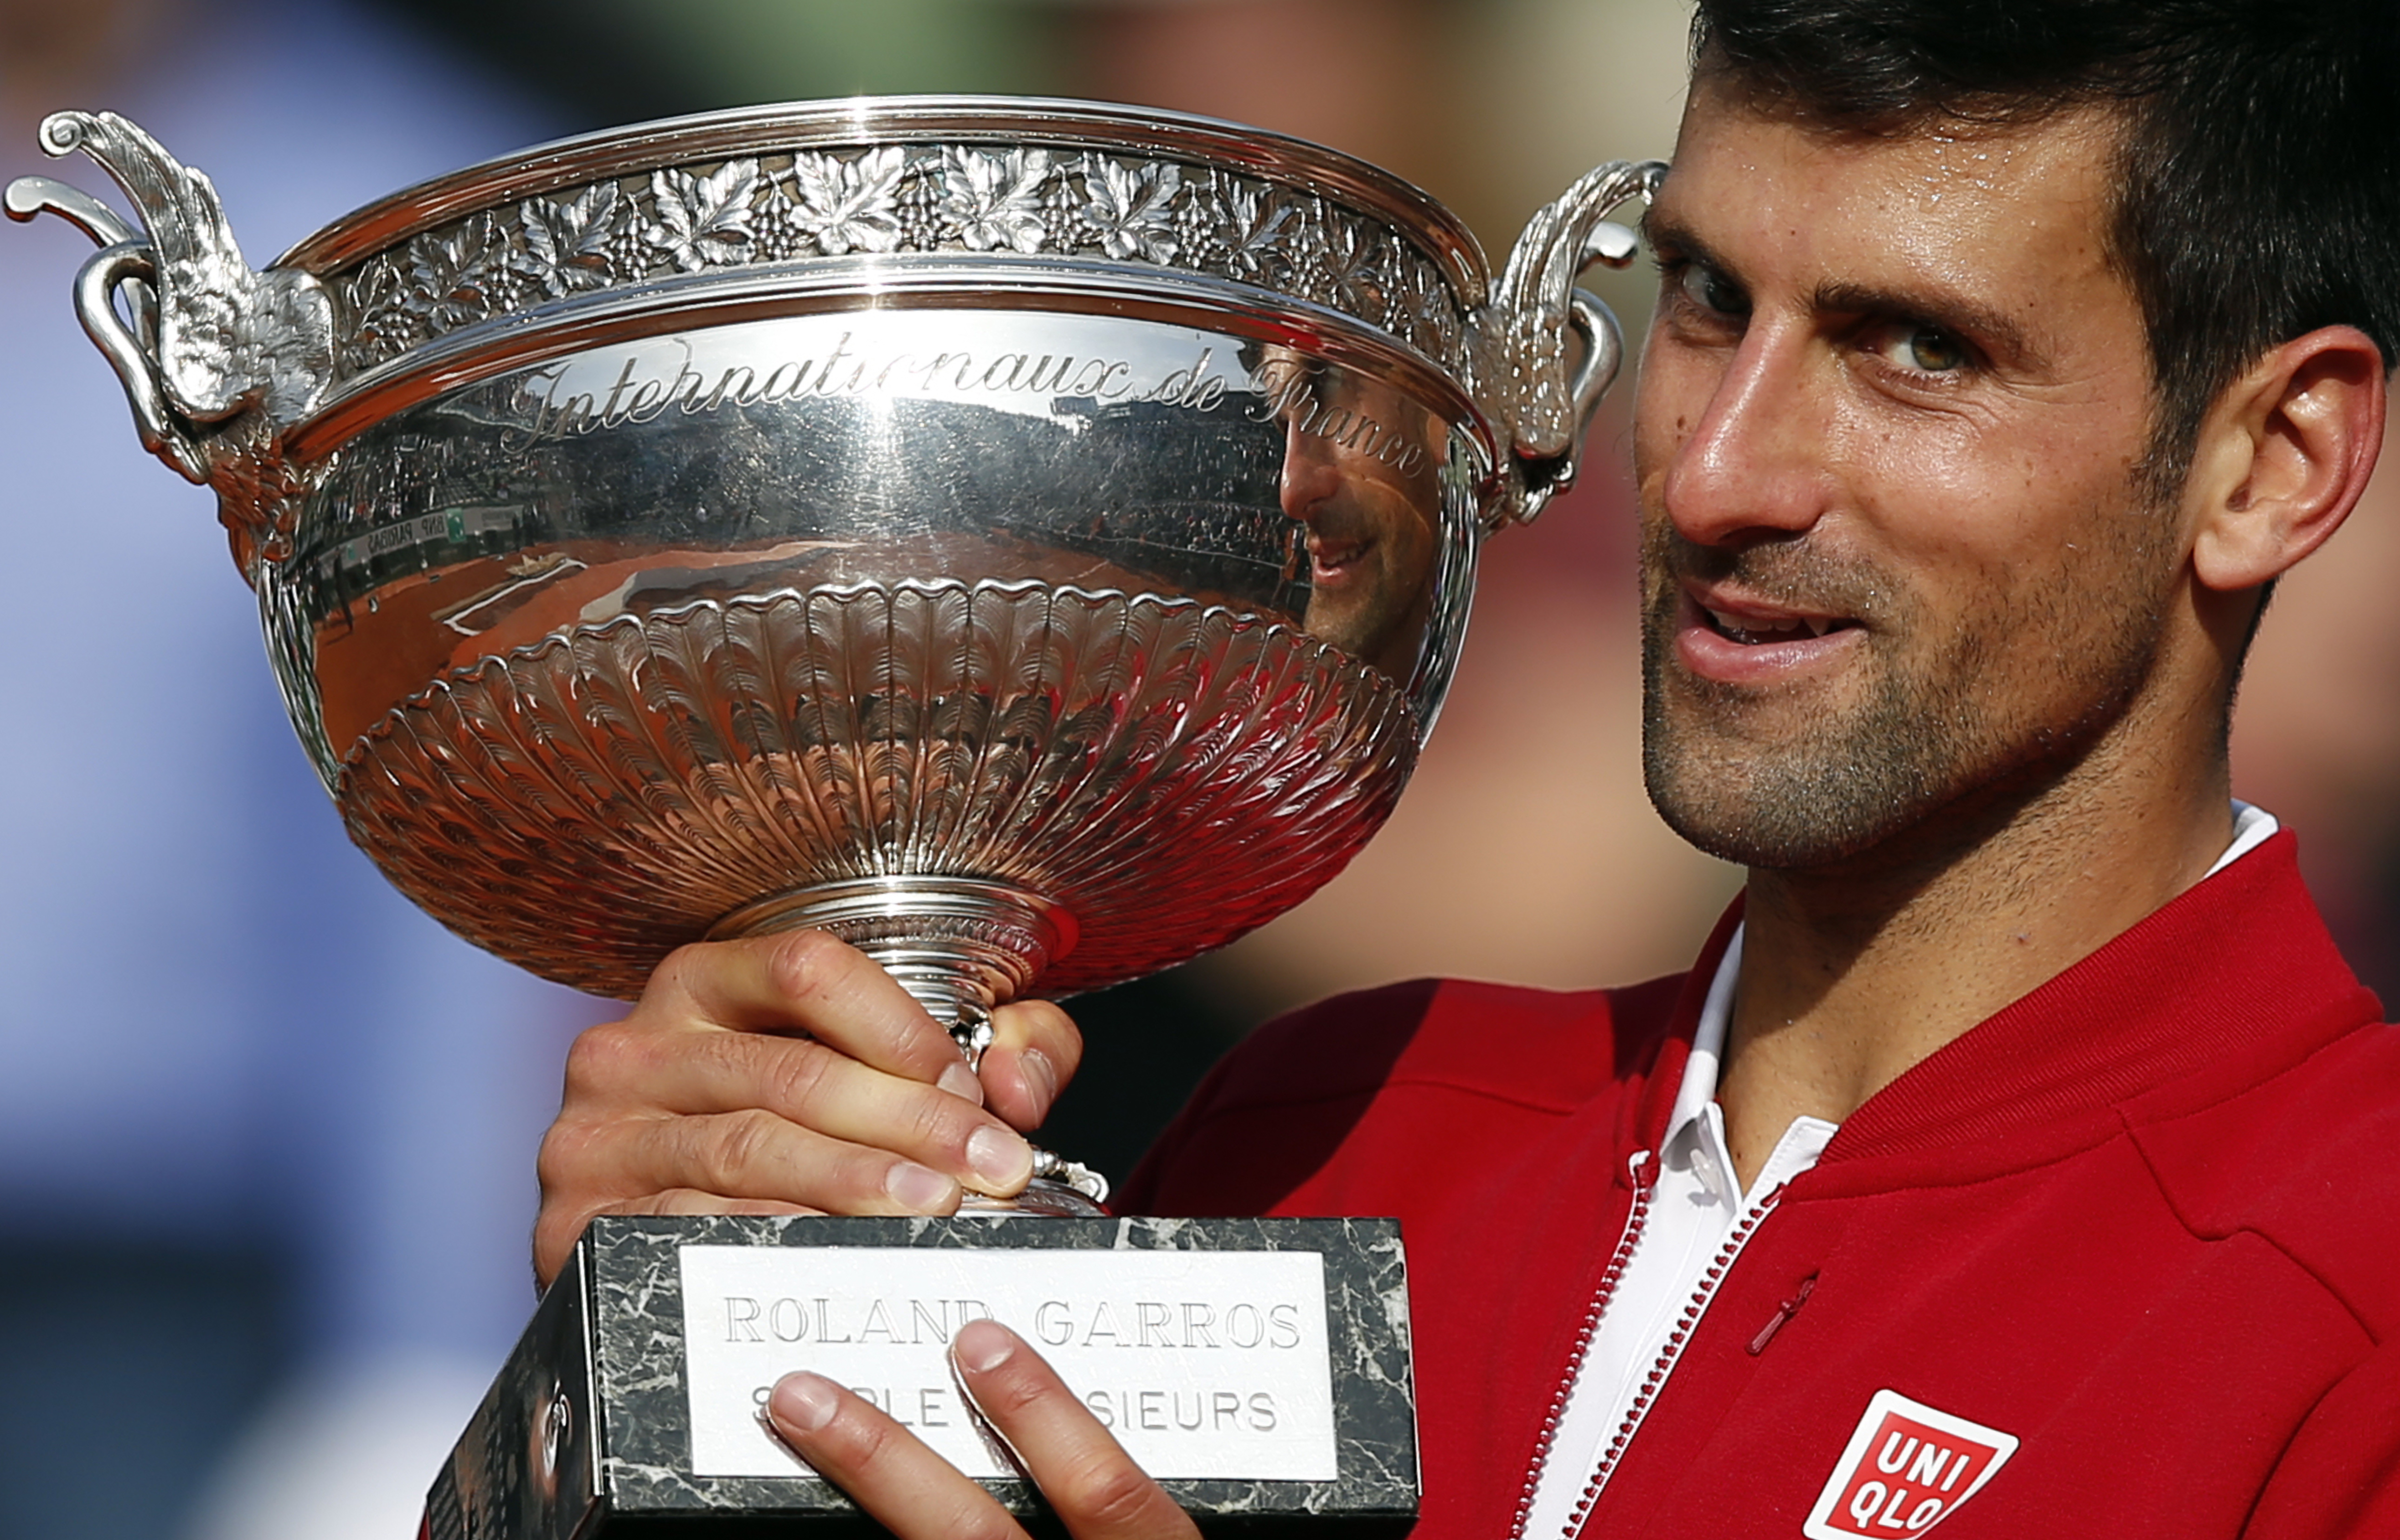 FILE - In this June 5, 2016, file photo, Serbia's Novak Djokovic holds the trophy after winning the final of the French Open tennis tournament against Britain's Andy Murray in four sets 3-6, 6-1, 6-2, 6-4, at the Roland Garros stadium in Paris, France. If